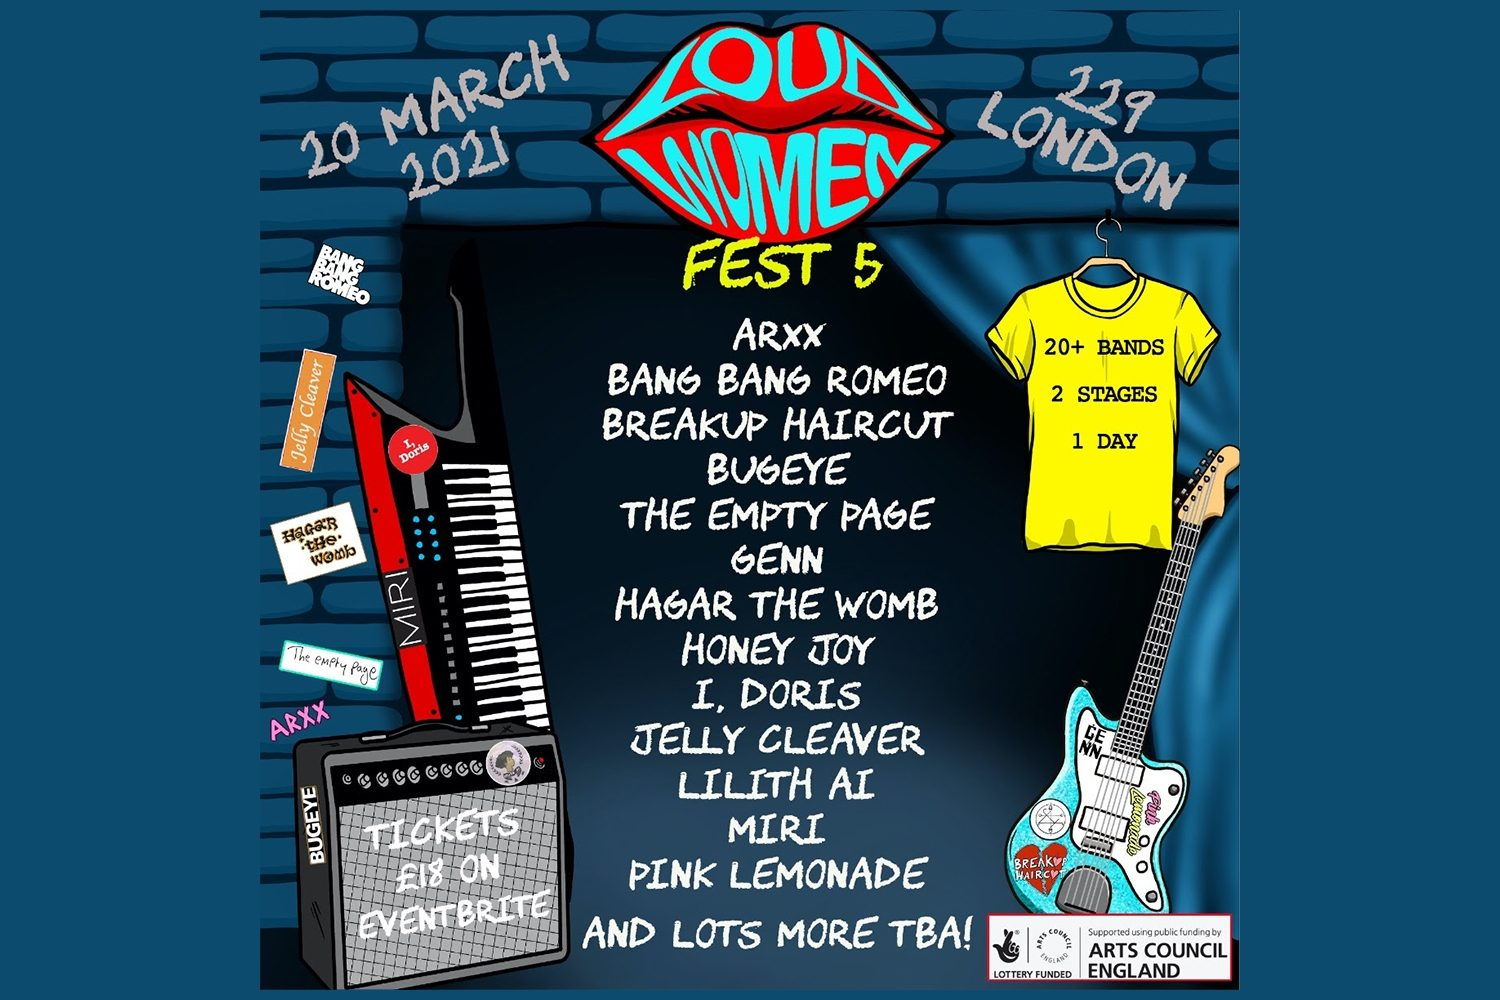 Loud Women Fest 5 has announced a load more acts for next year's event